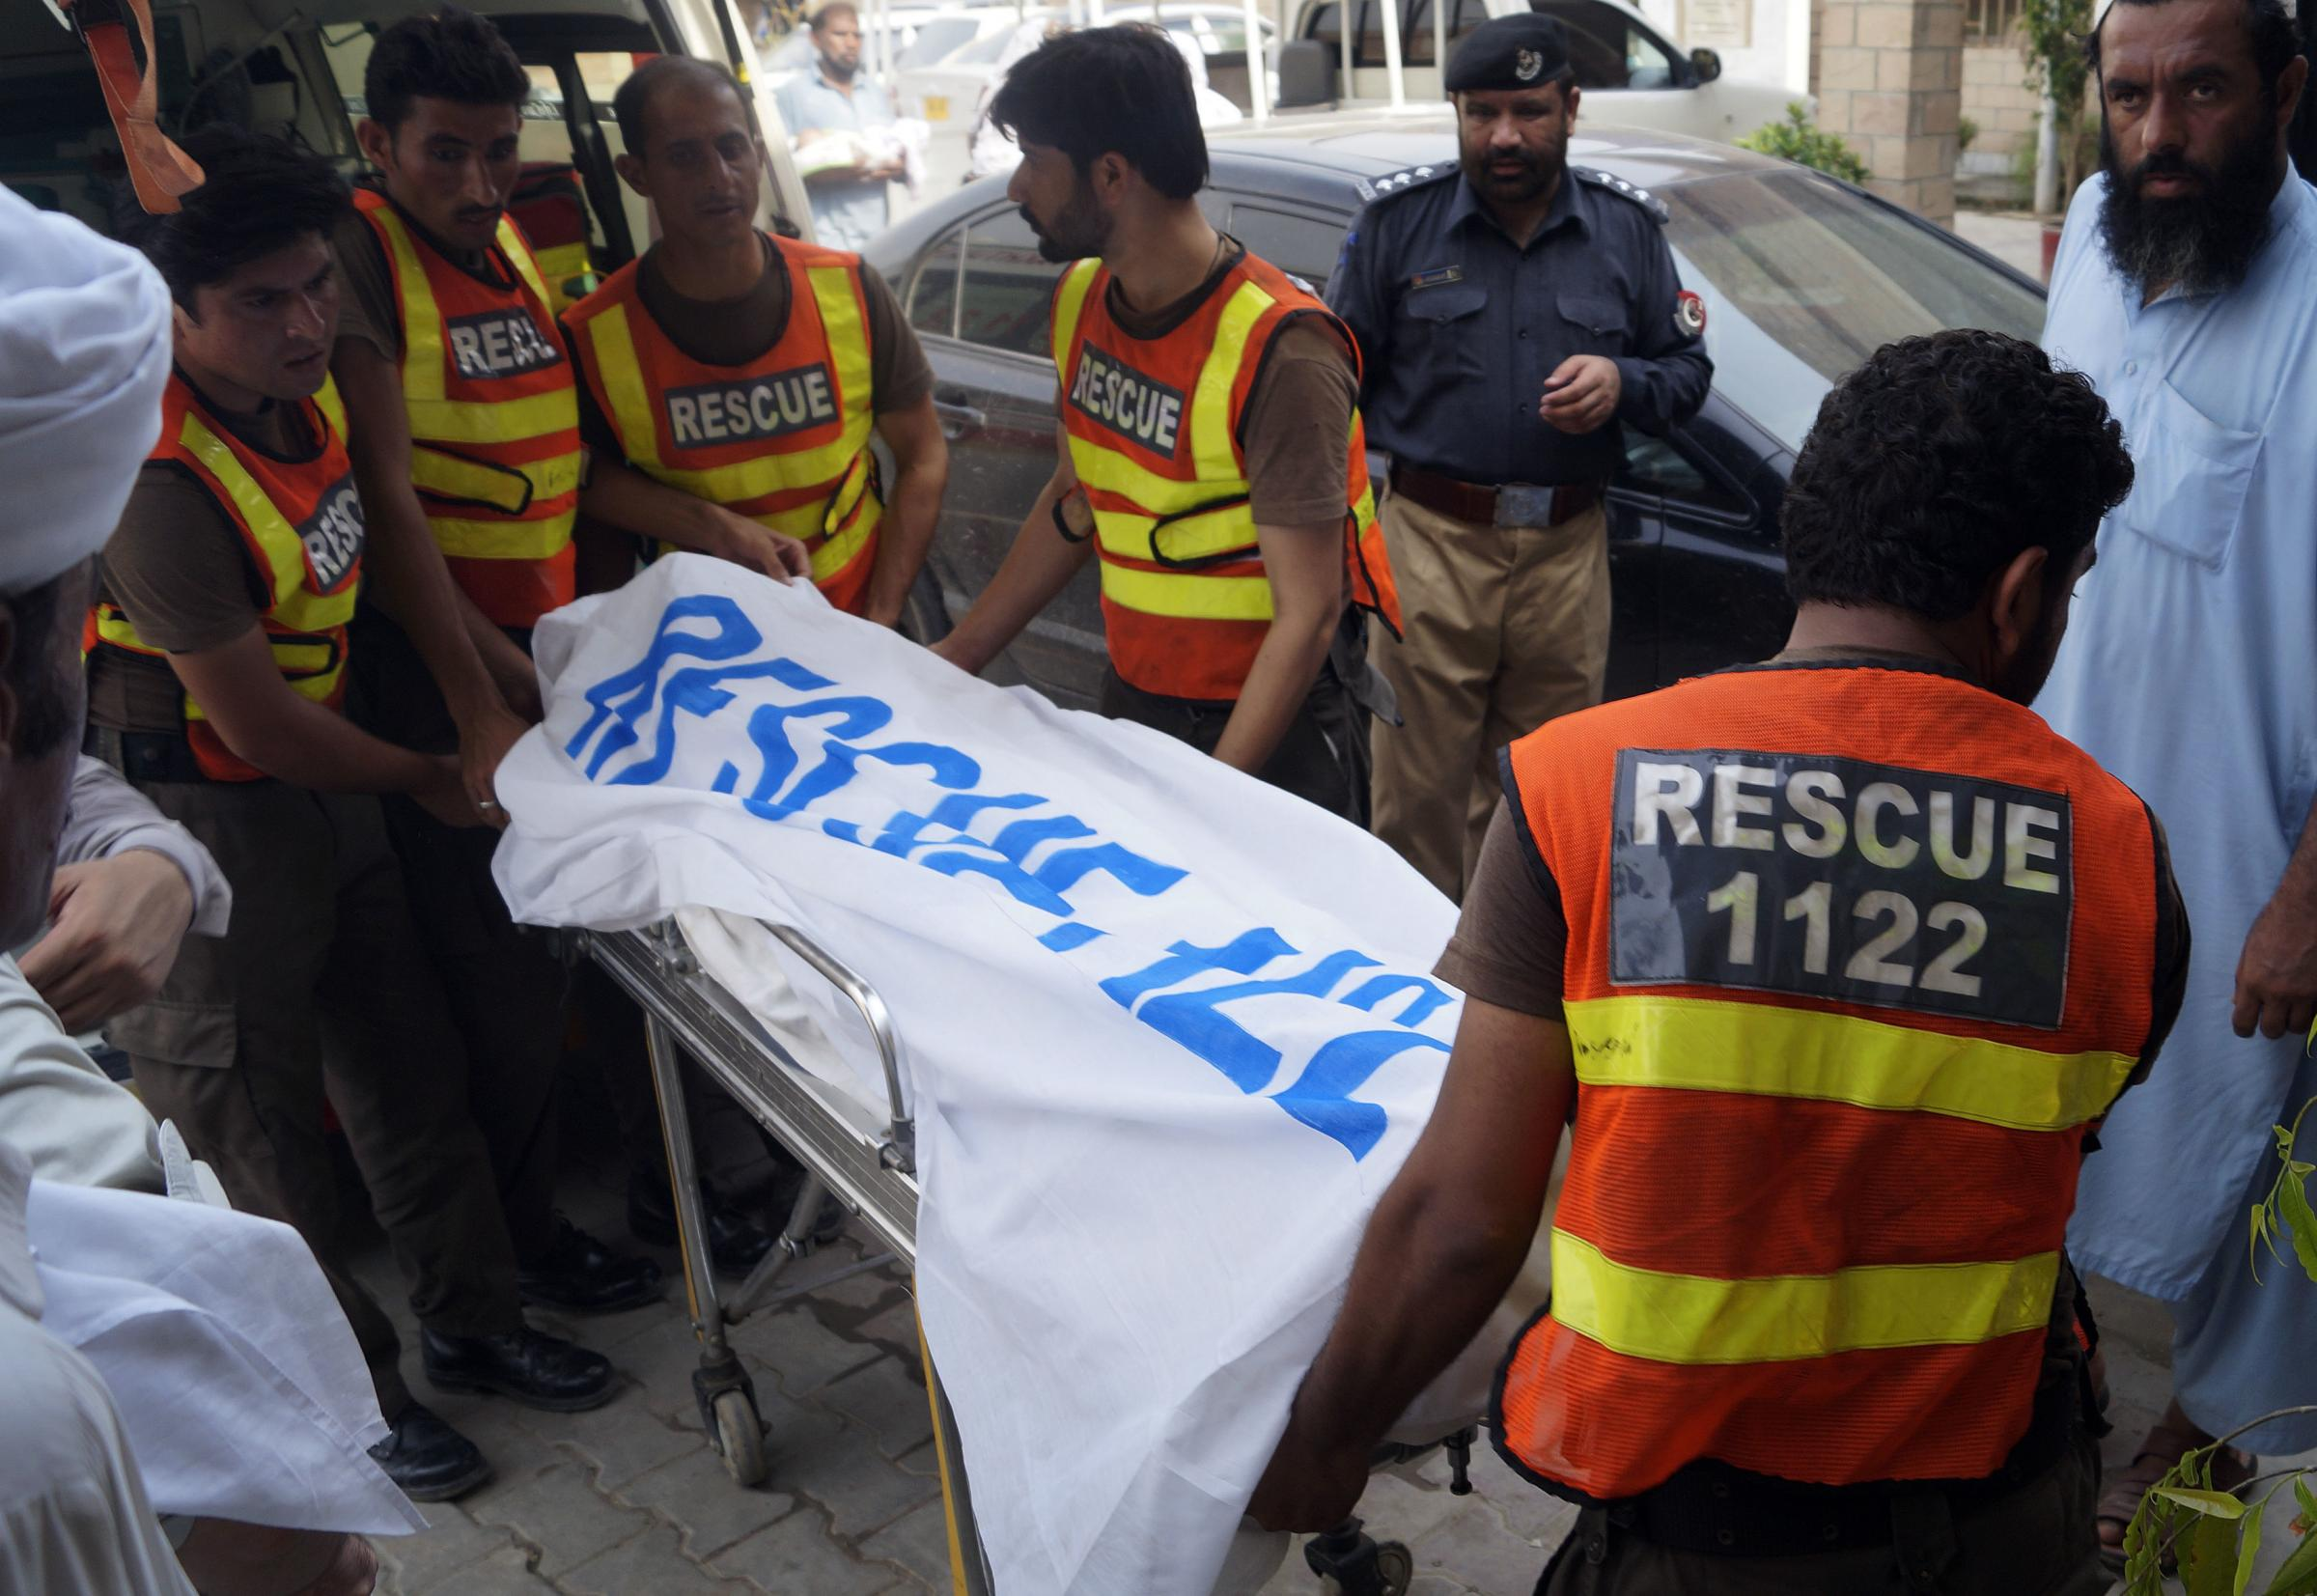 Rescue workers move the body of Ikramullah Gandapur, a candidate from opposition leader Imran Khan's party, who was killed in the suicide bombing, for postmortem at a hospital in Dera Ismail Khan, Pakistan, Sunday, July 22, 2018.